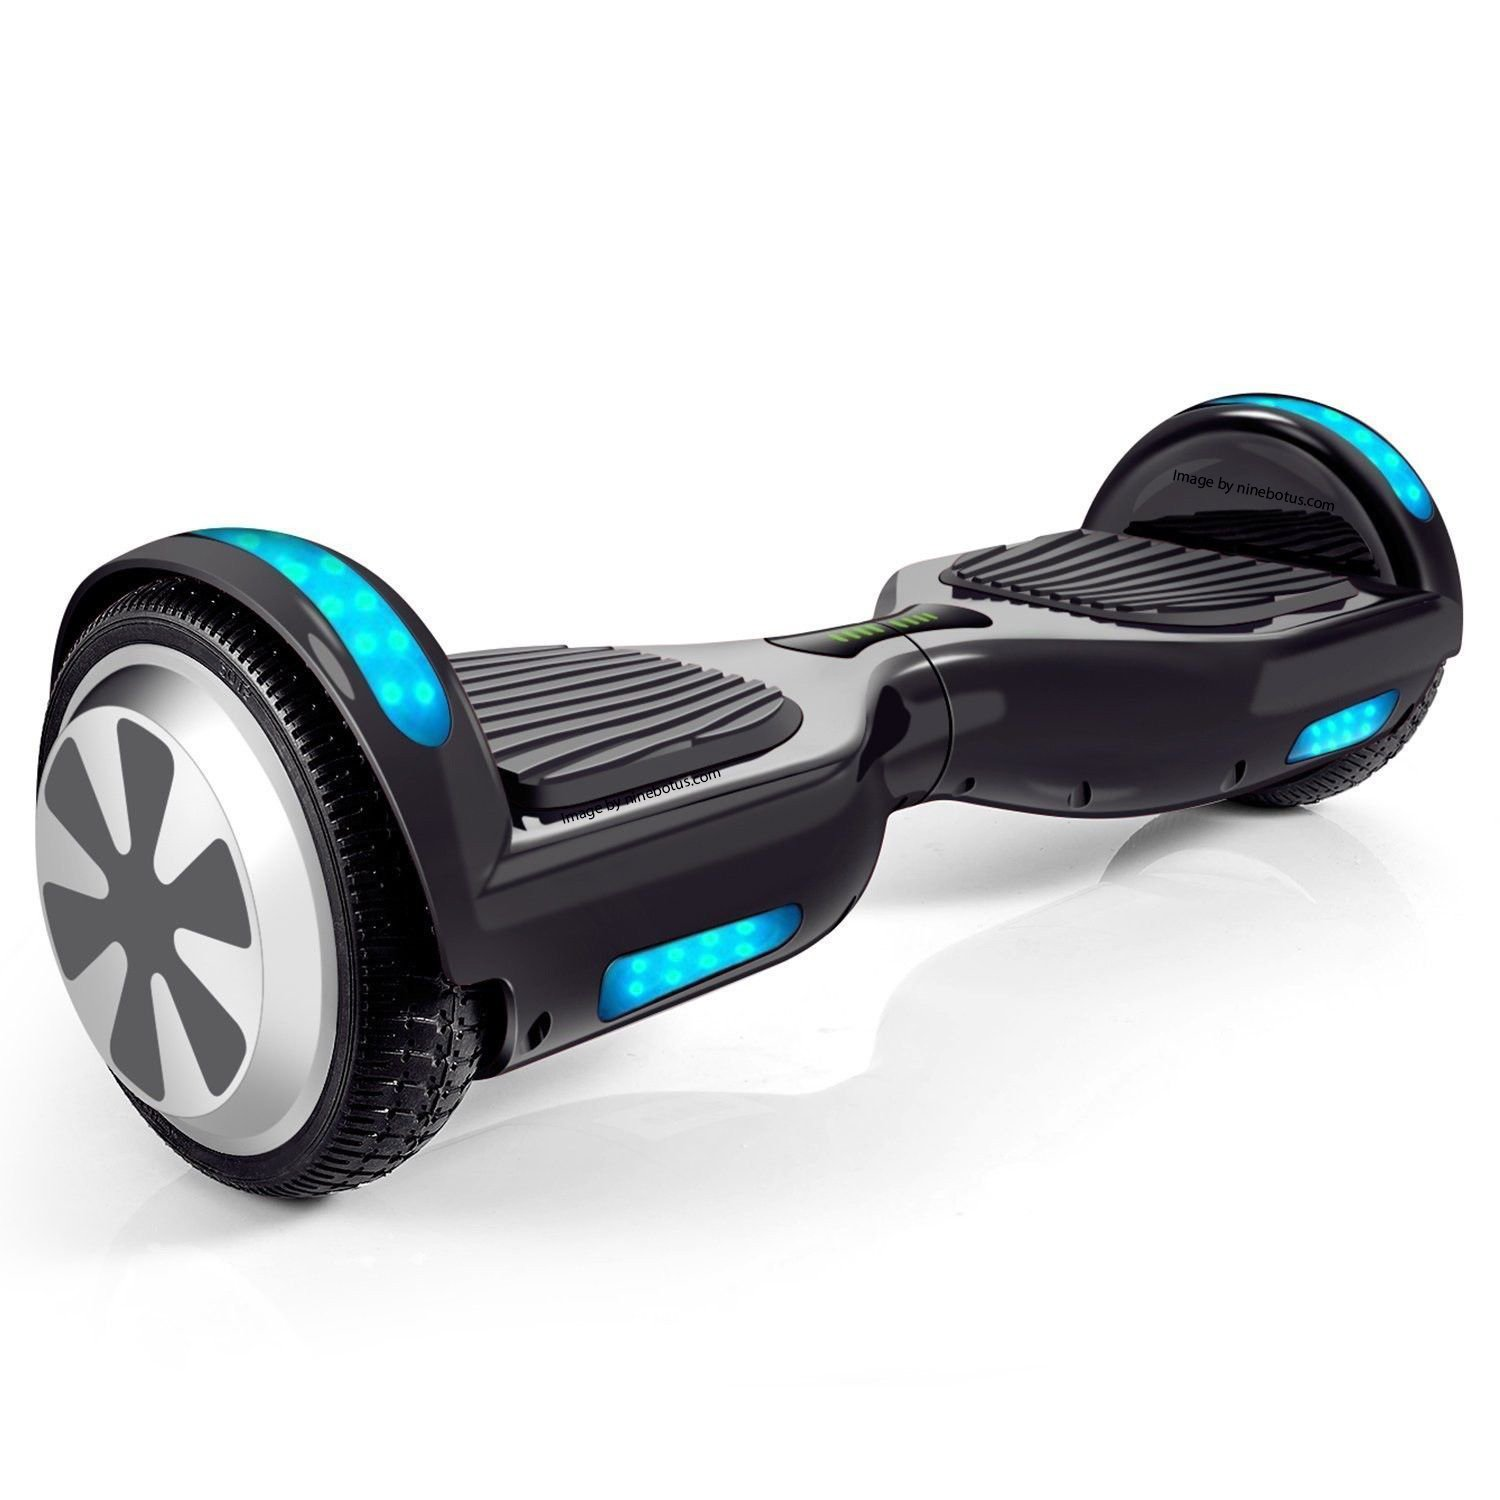 """Hoveroid 6.5"""" Electric Self-Balancing Hoverboard Two-Wheel Scooter with Bluetooth Speaker with Side LED Lights UL2272 Certified - Cheap Hoverboards under 250$"""